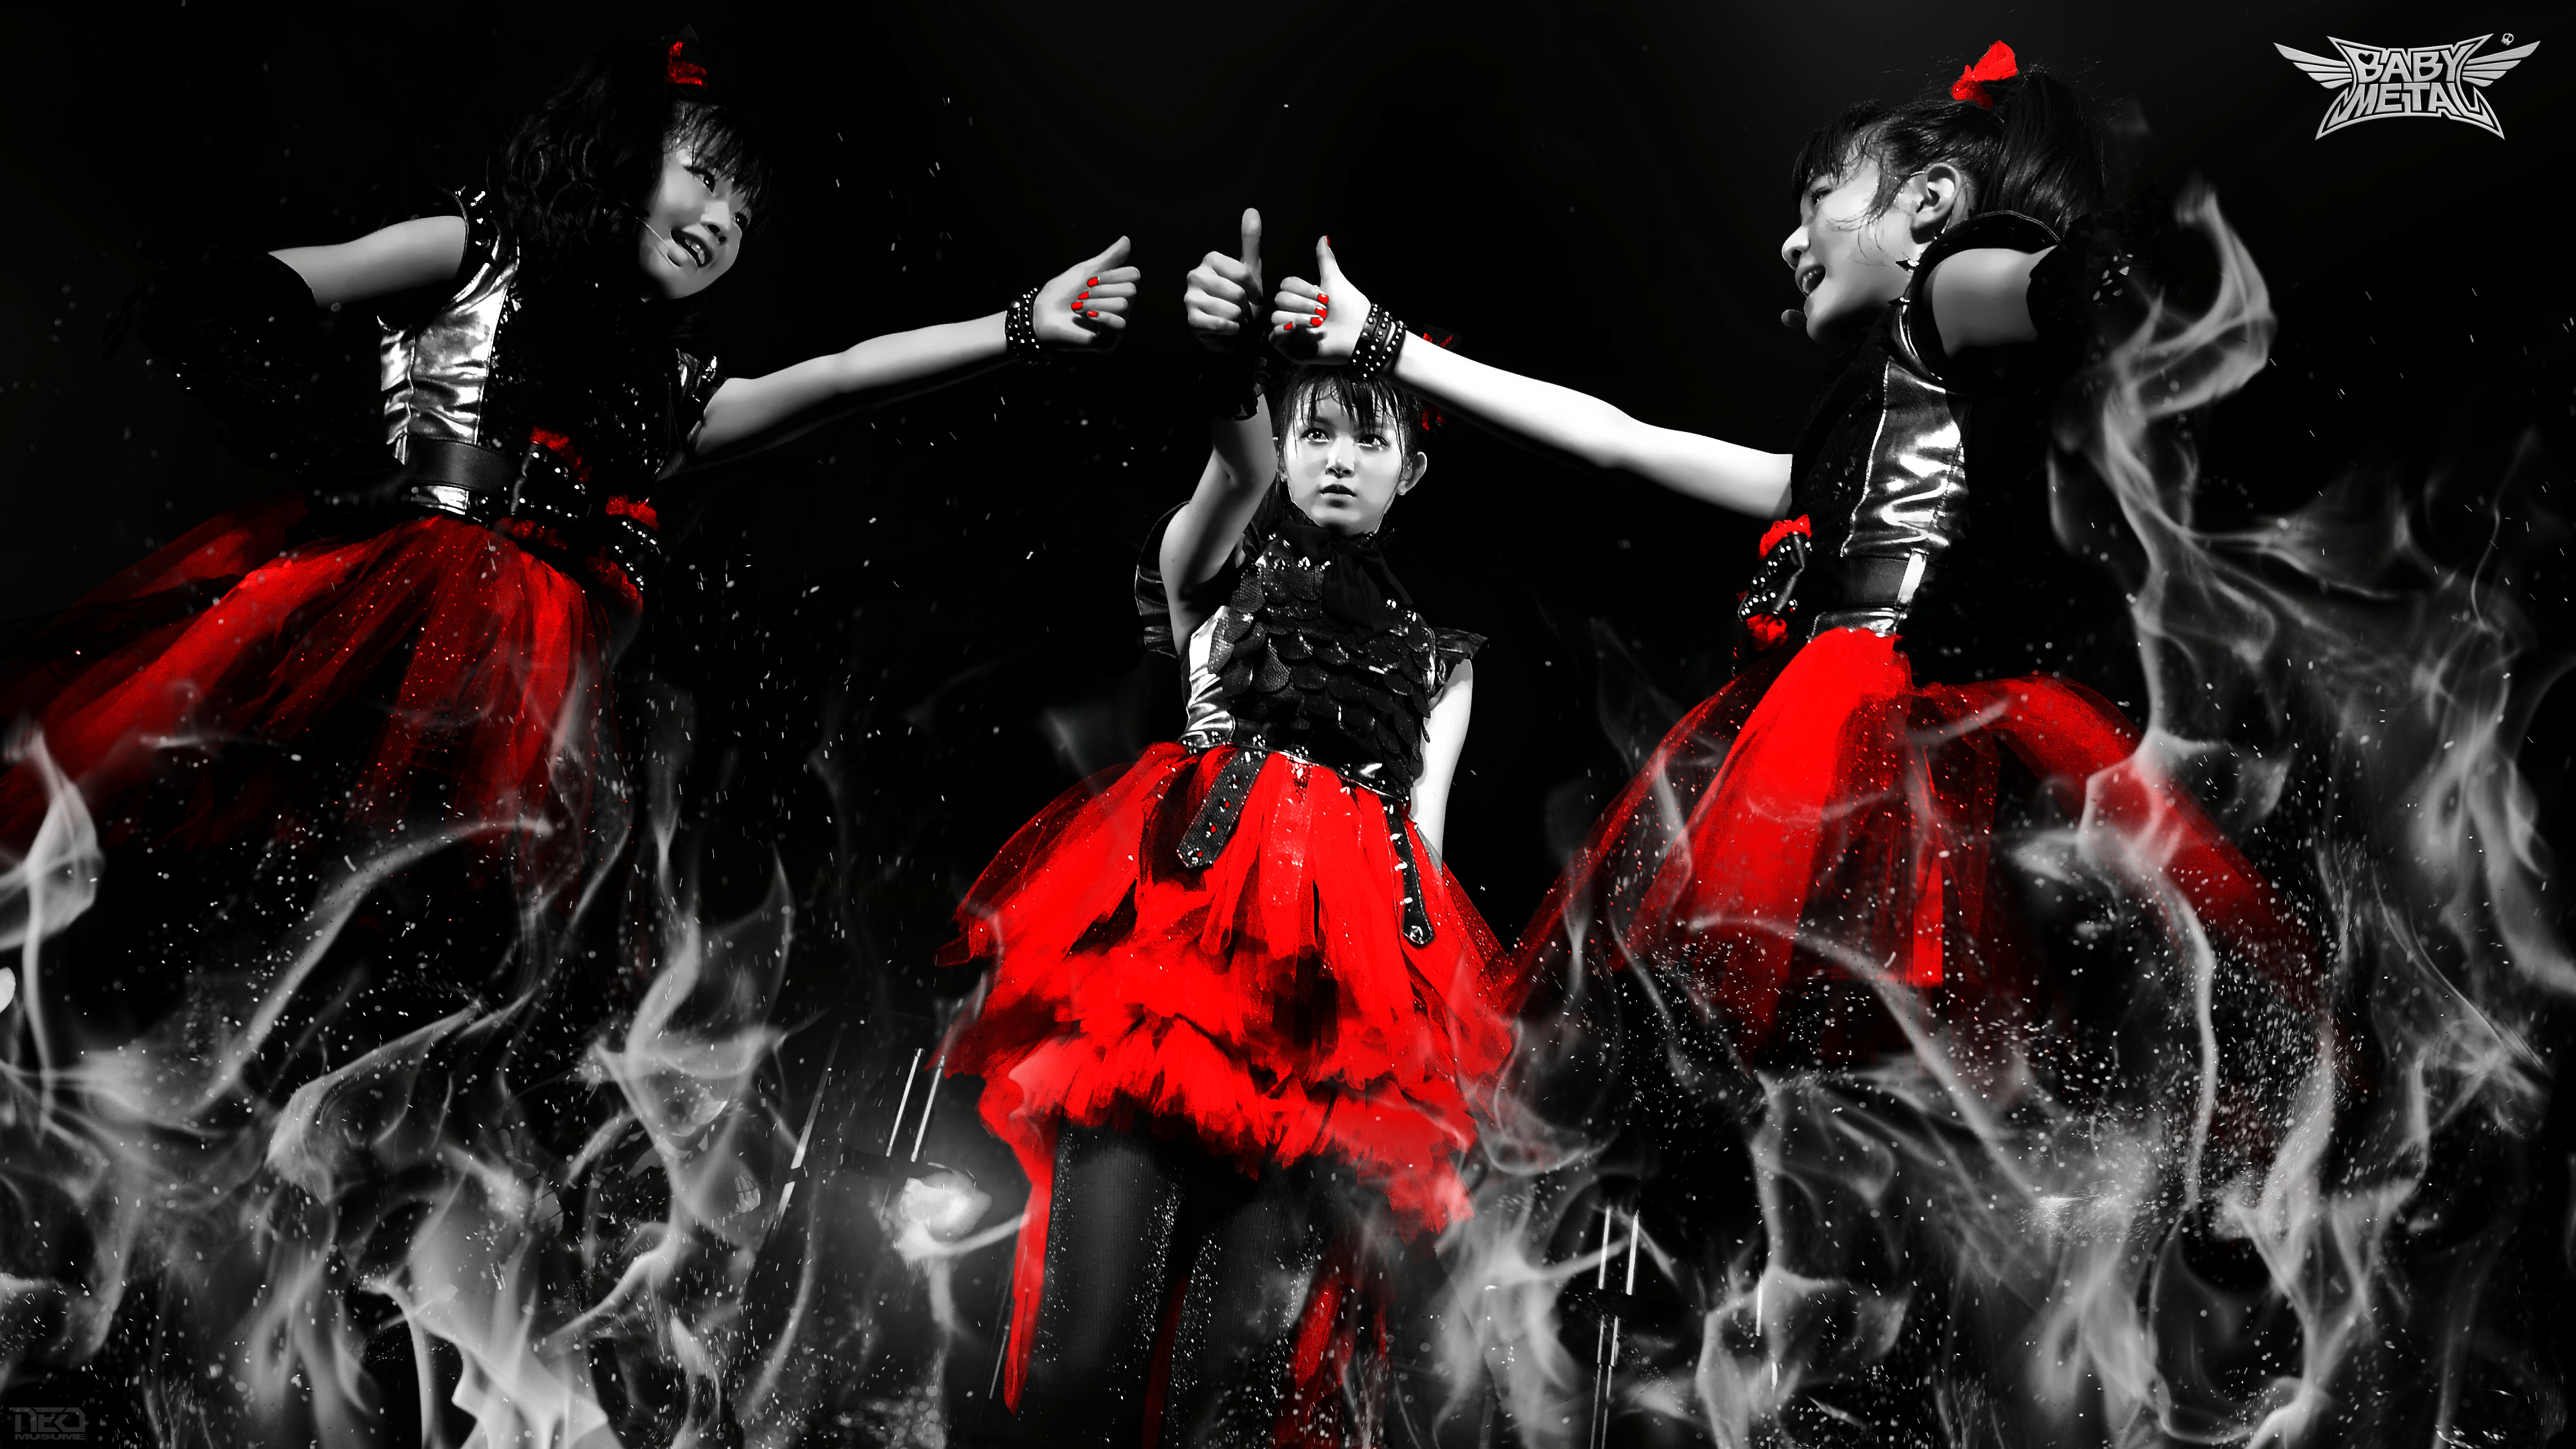 Babymetal 4K Ultra Hd Wallpaper  Background Image  3840X2160  Id760619 - Wallpaper -2013